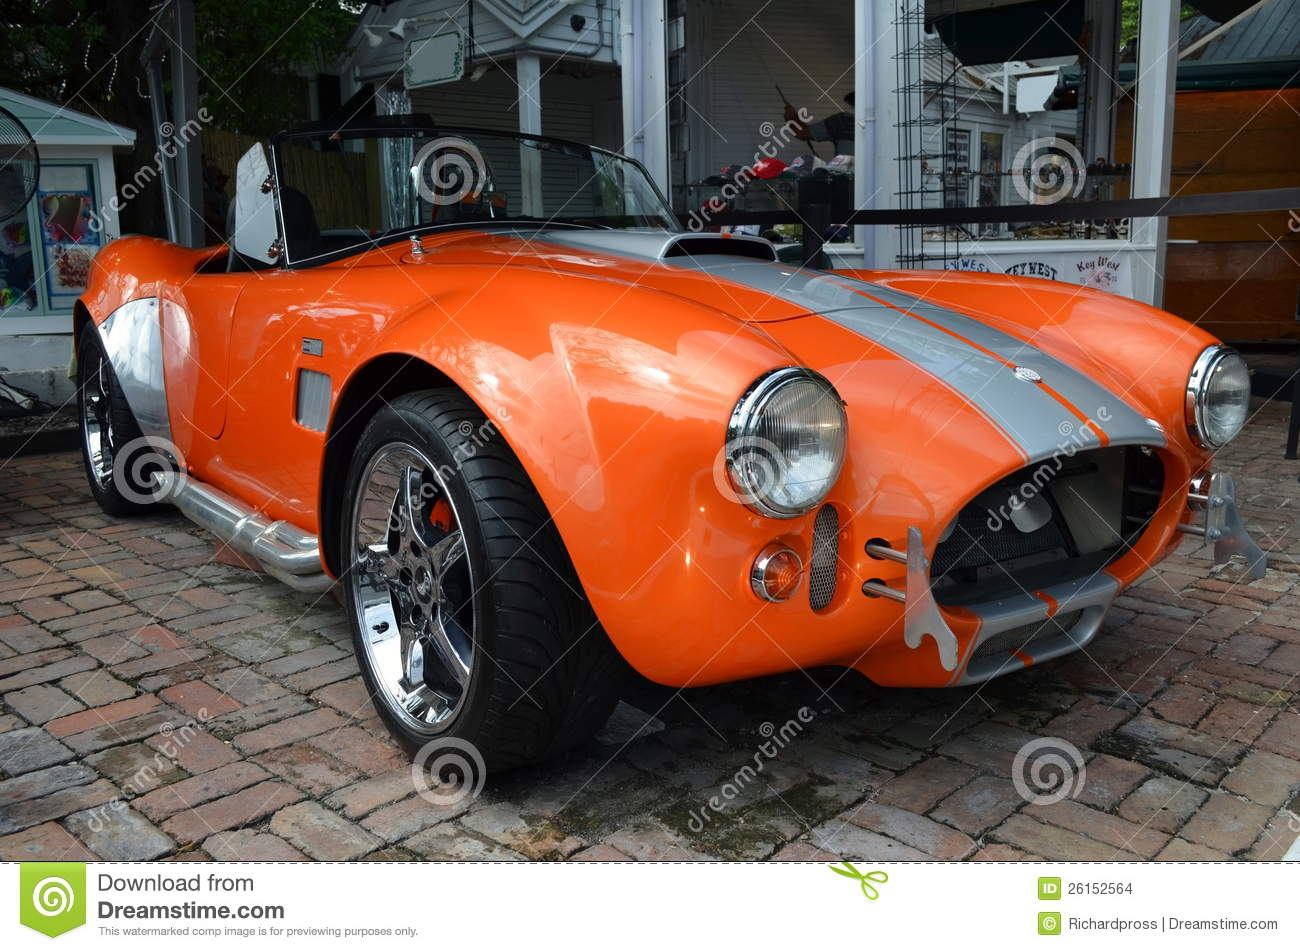 Vintage classic sports car on display in front of a key west shop on